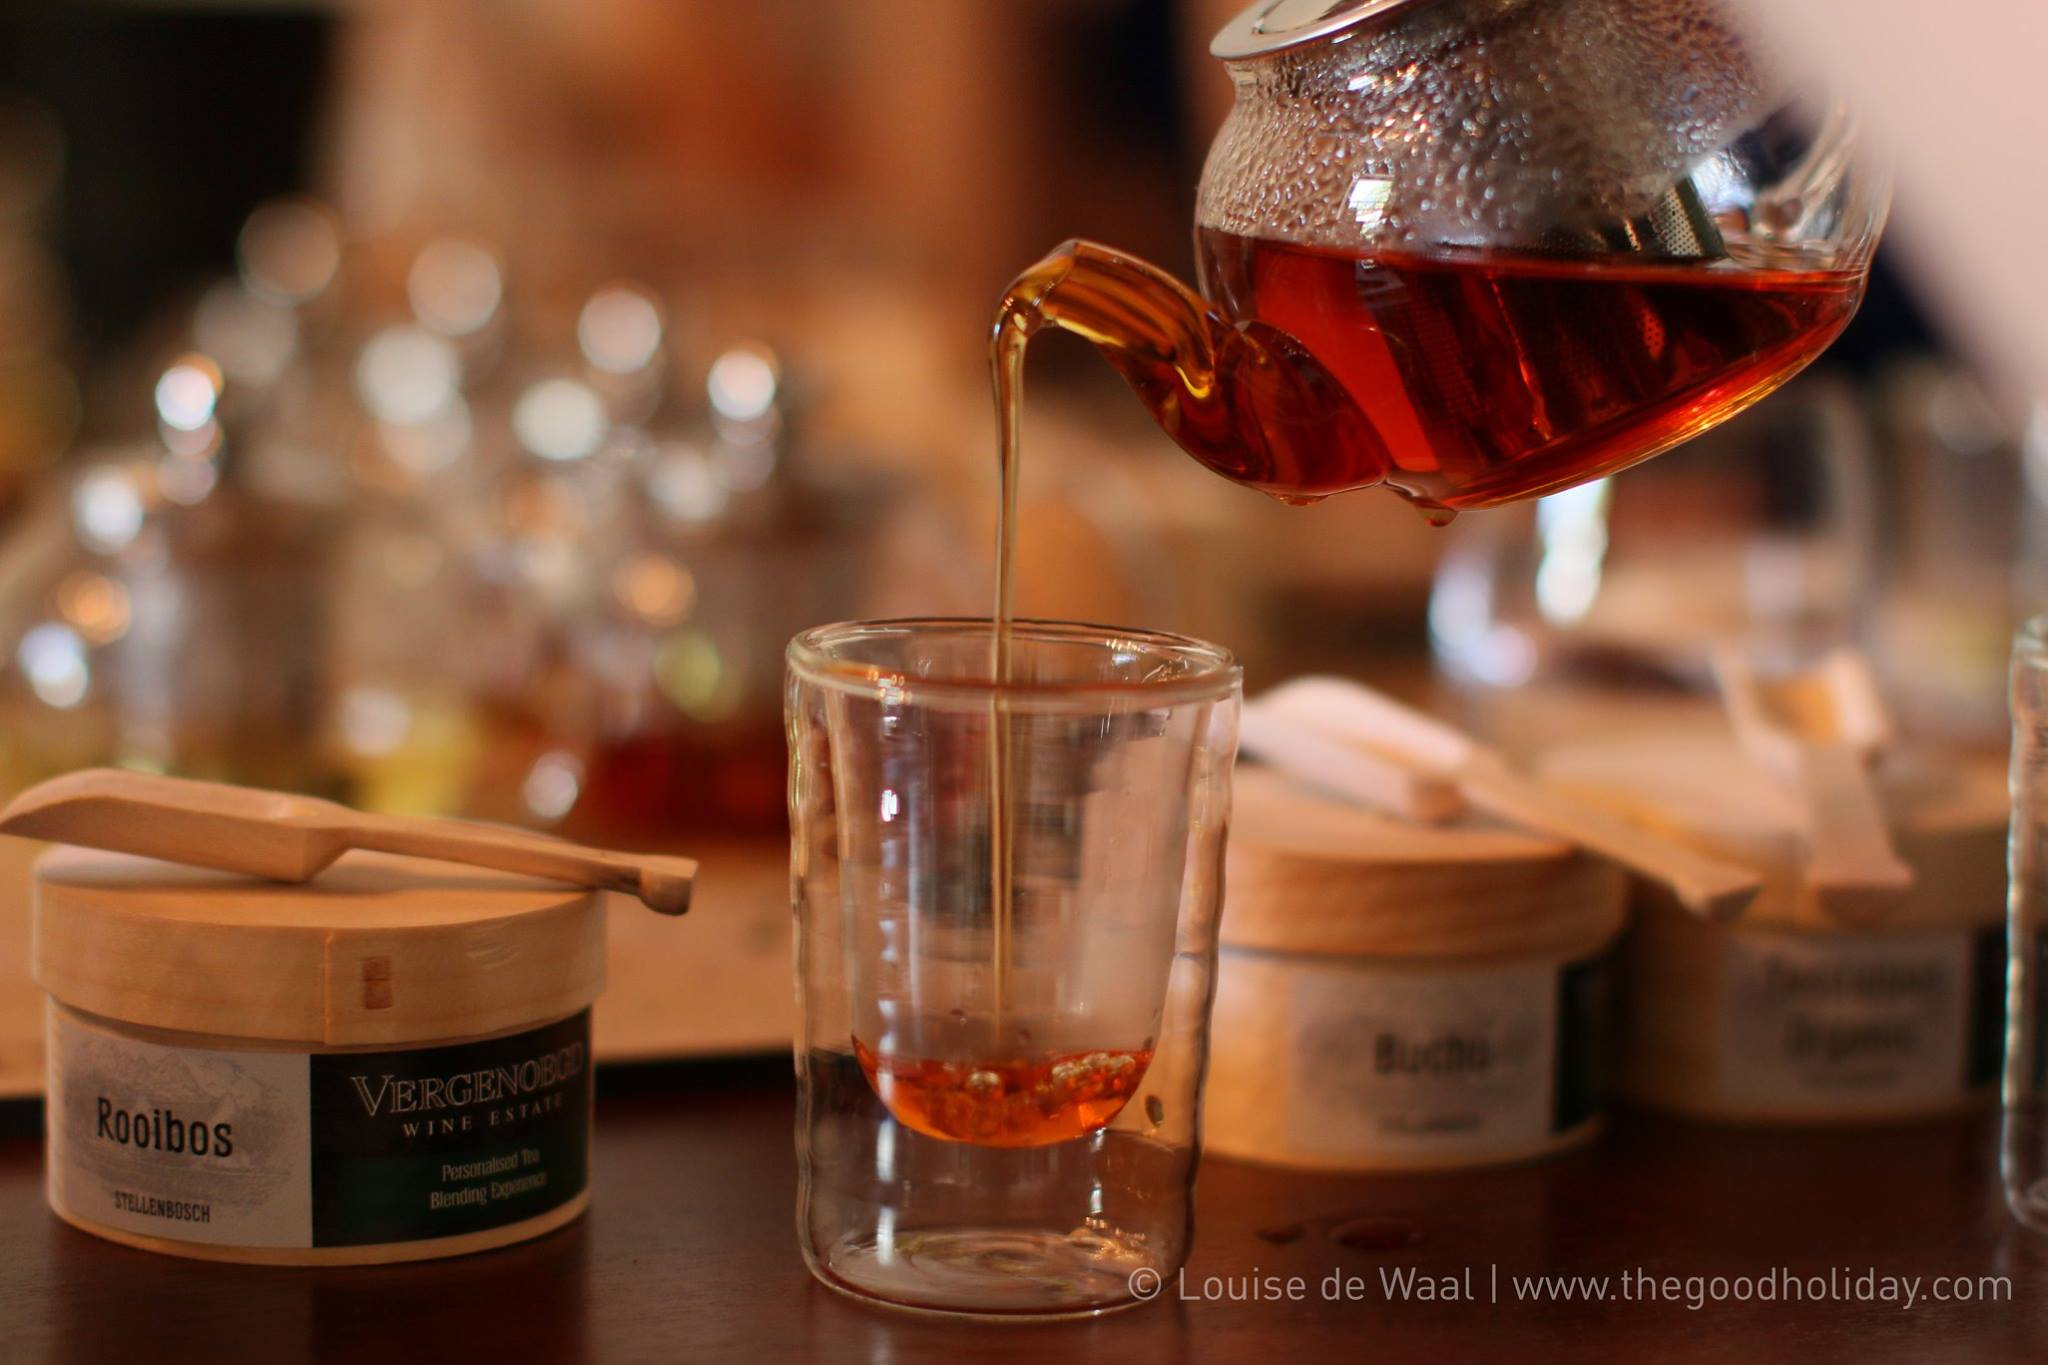 Vergenoegd Wine Estate Tea Blending